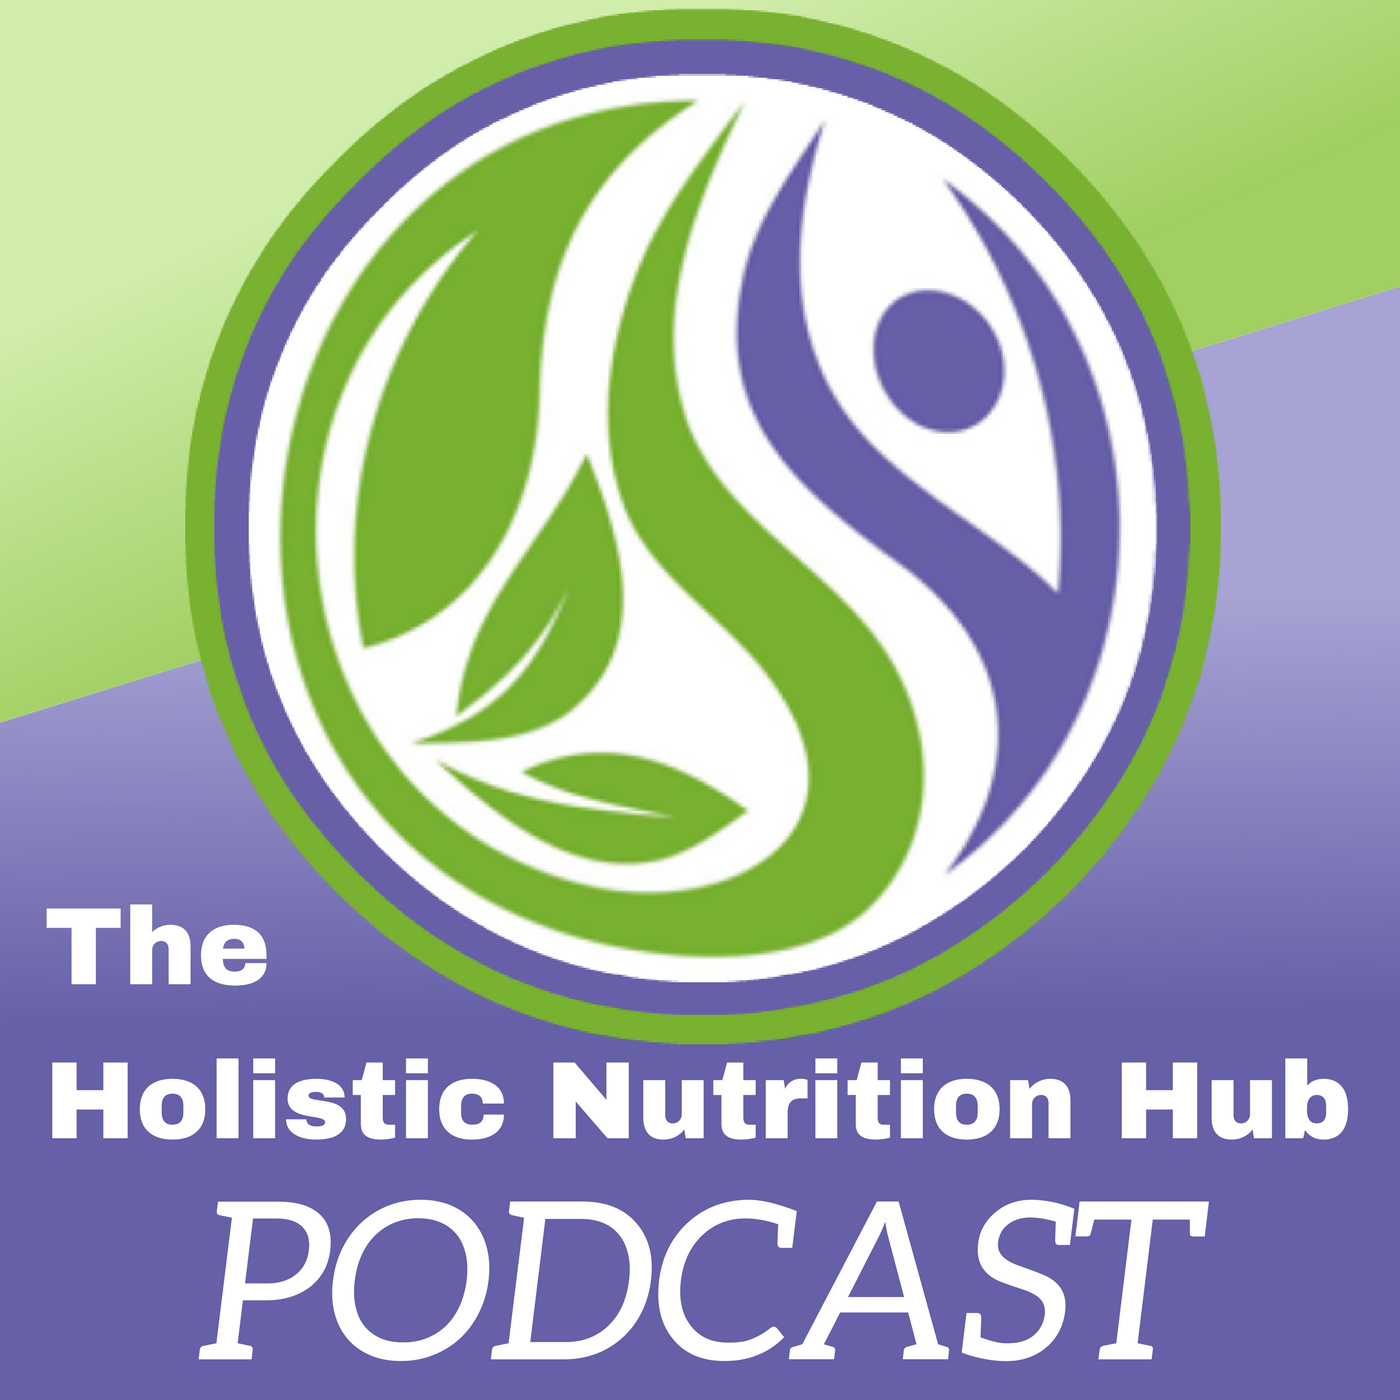 The Holistic Nutrition Hub Podcast